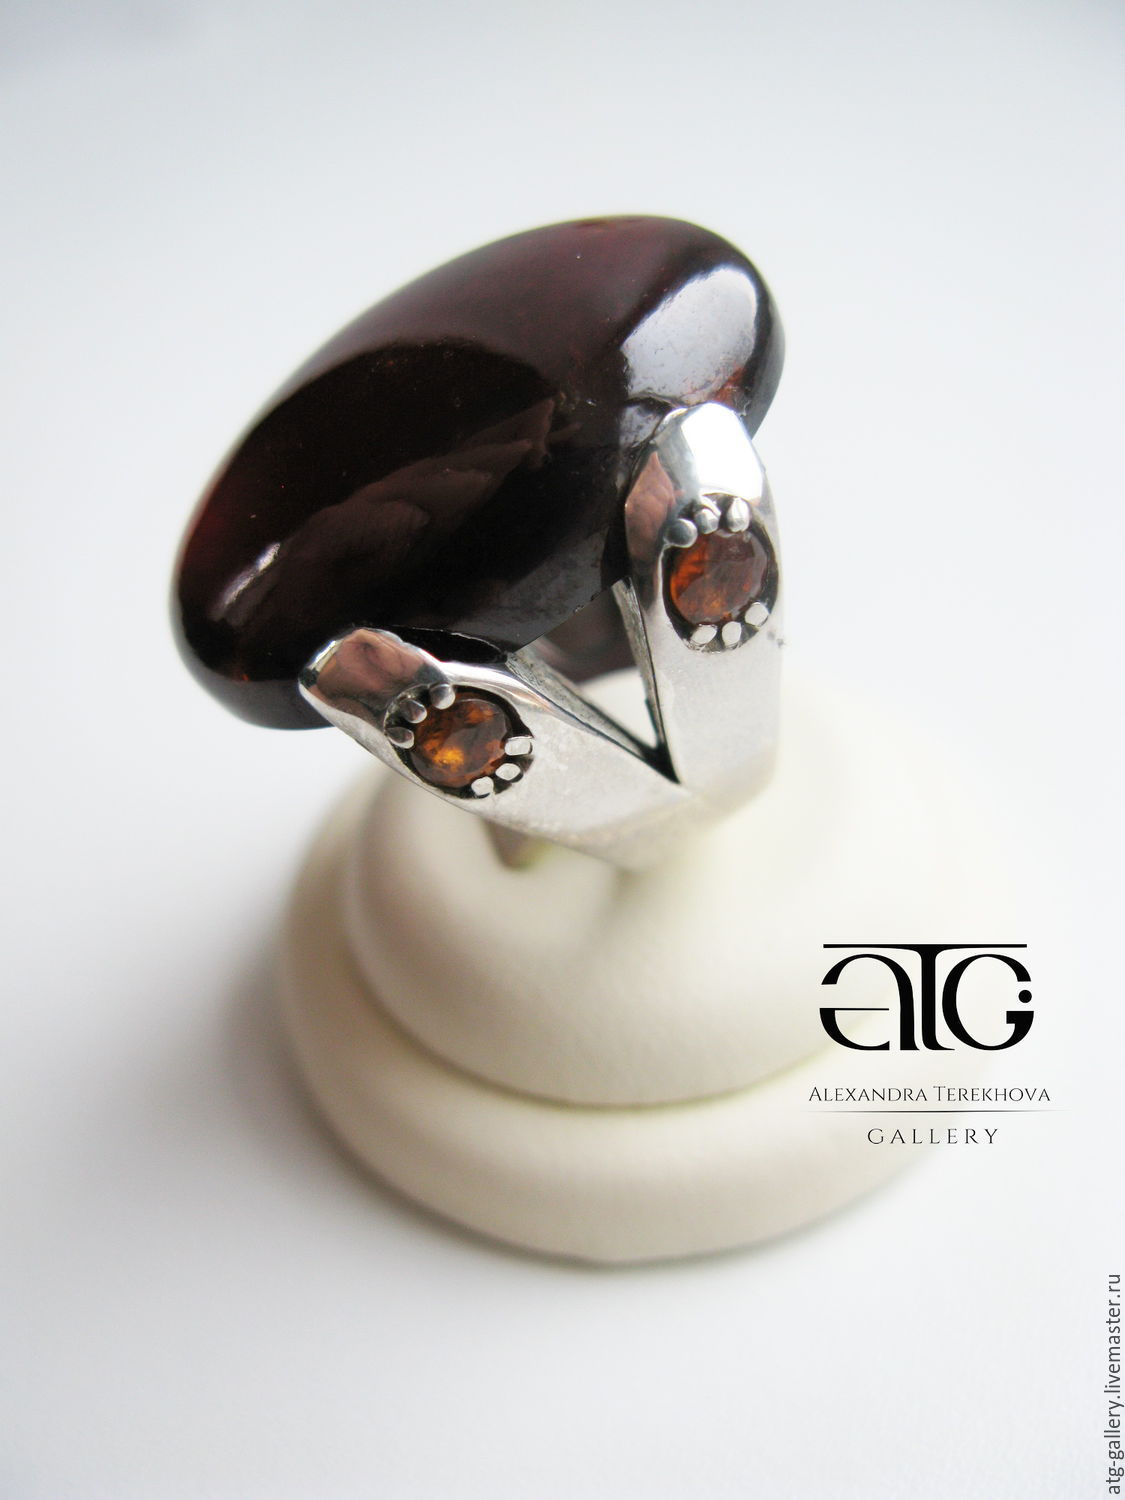 Very beautiful, stylish, fashion luxurious ring with hessonite garnets Carat 73.27!